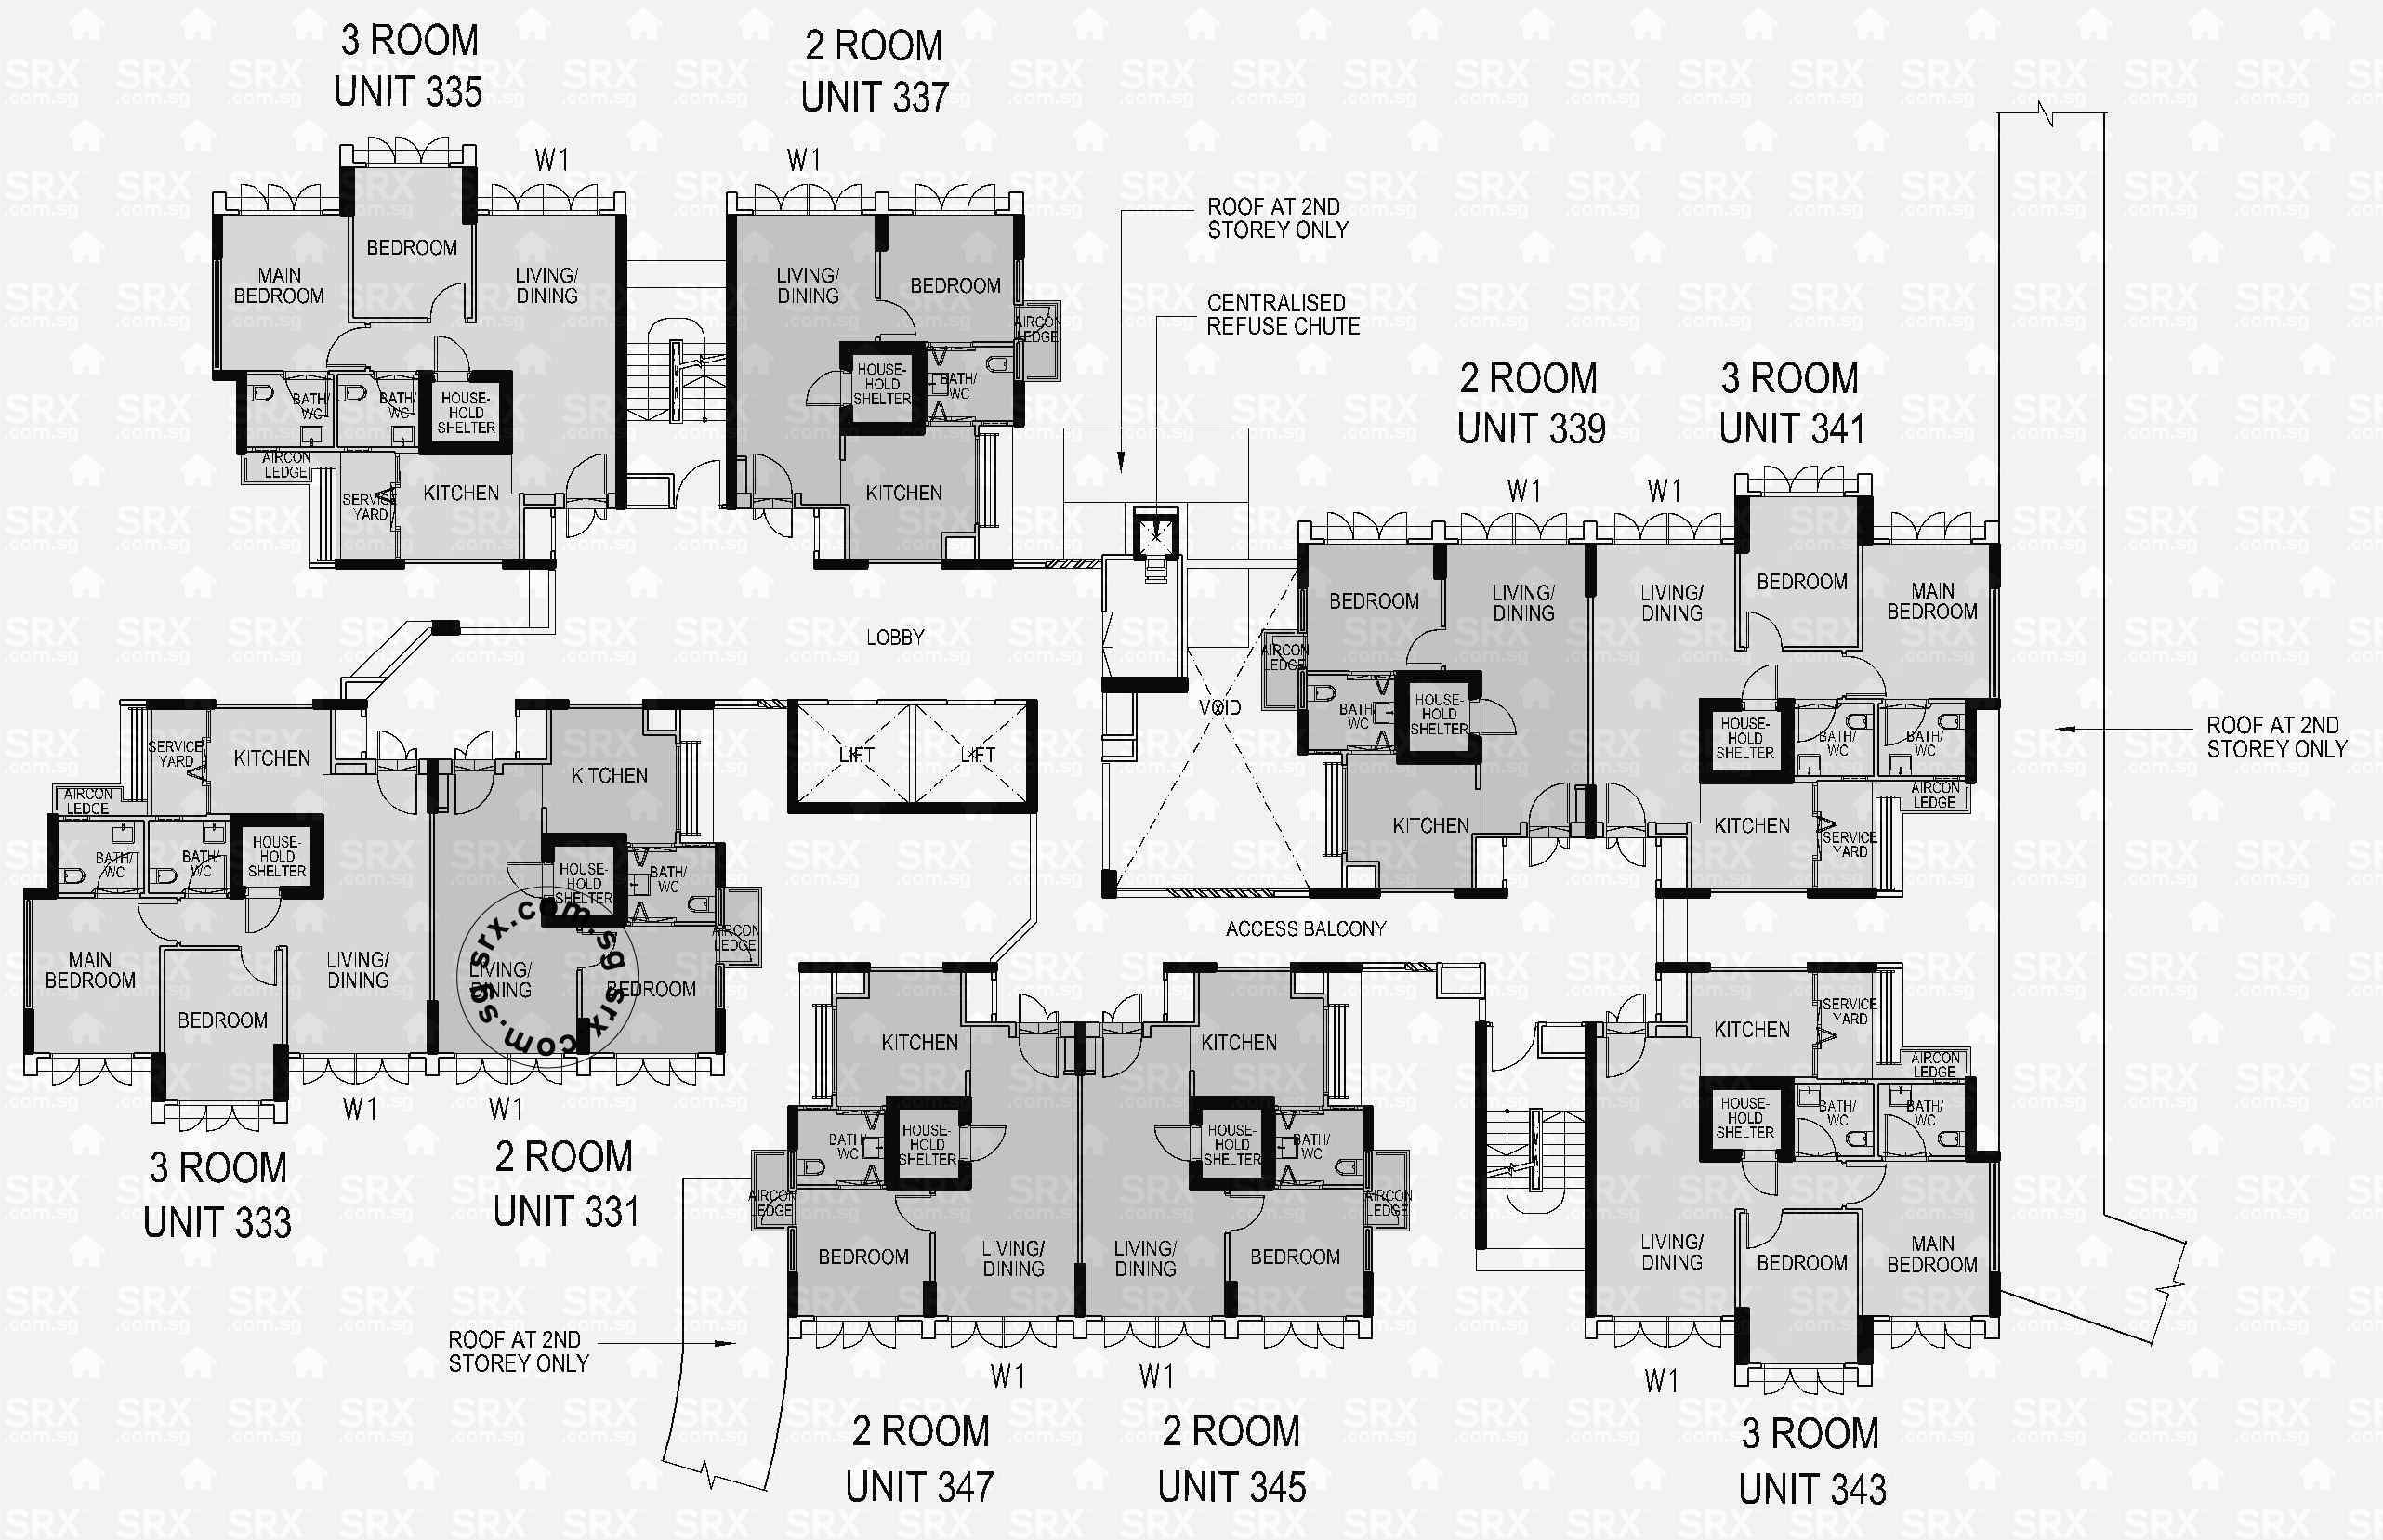 Floor plans for 180a rivervale crescent s 541180 hdb for 1077 marinaside crescent floor plan